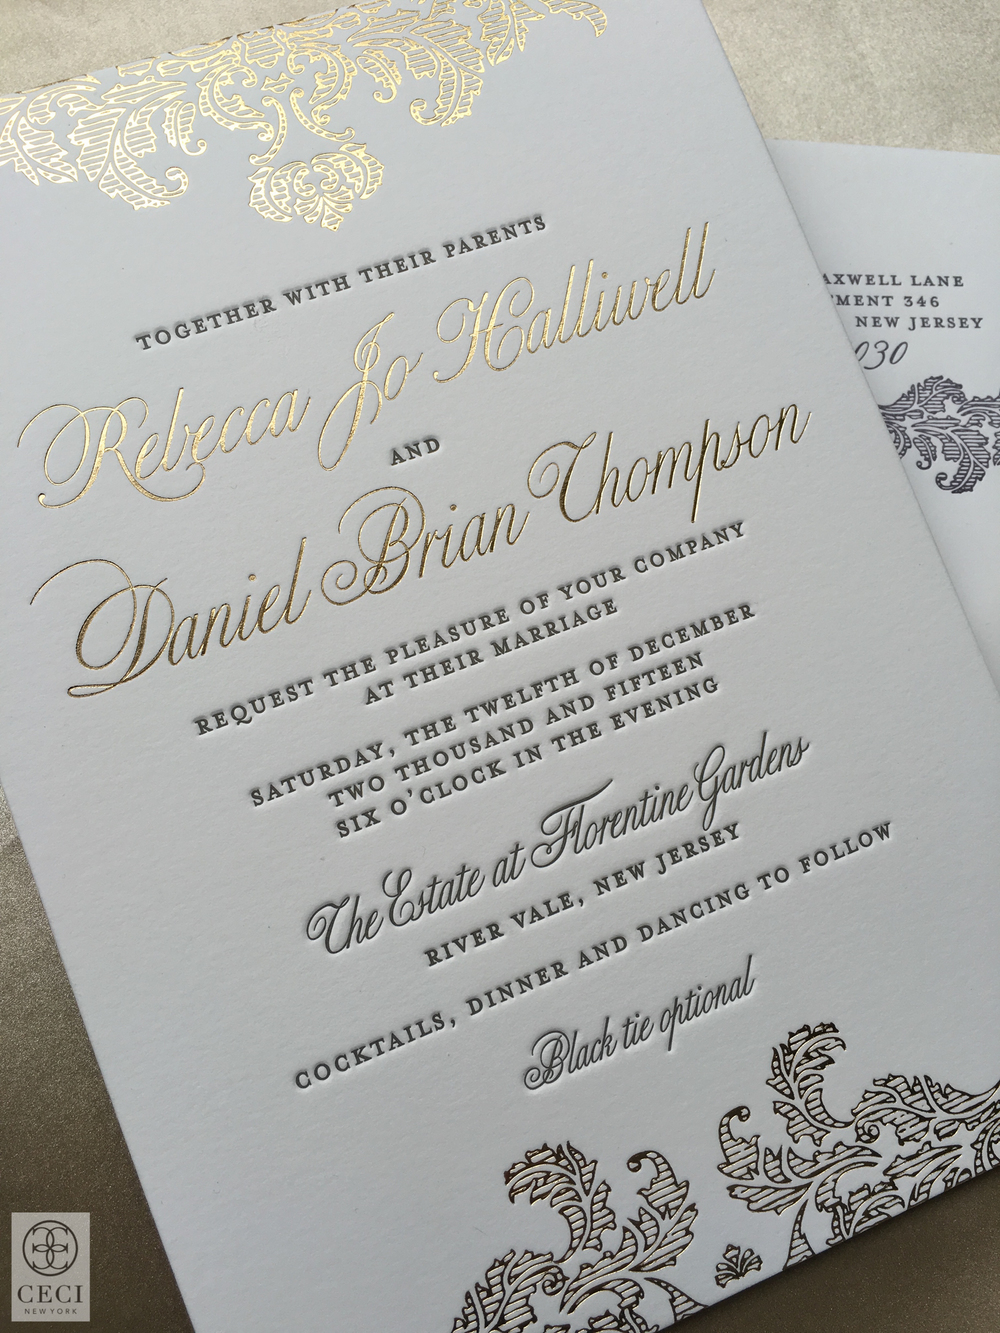 Ceci_New_York_New_Jersey_Invitations_Wedding_New_York_Elegance_Silver_Blue_Letterpress_Deco_Classic_Foil_Stamping_Custom_Couture_Personalized-13.jpg